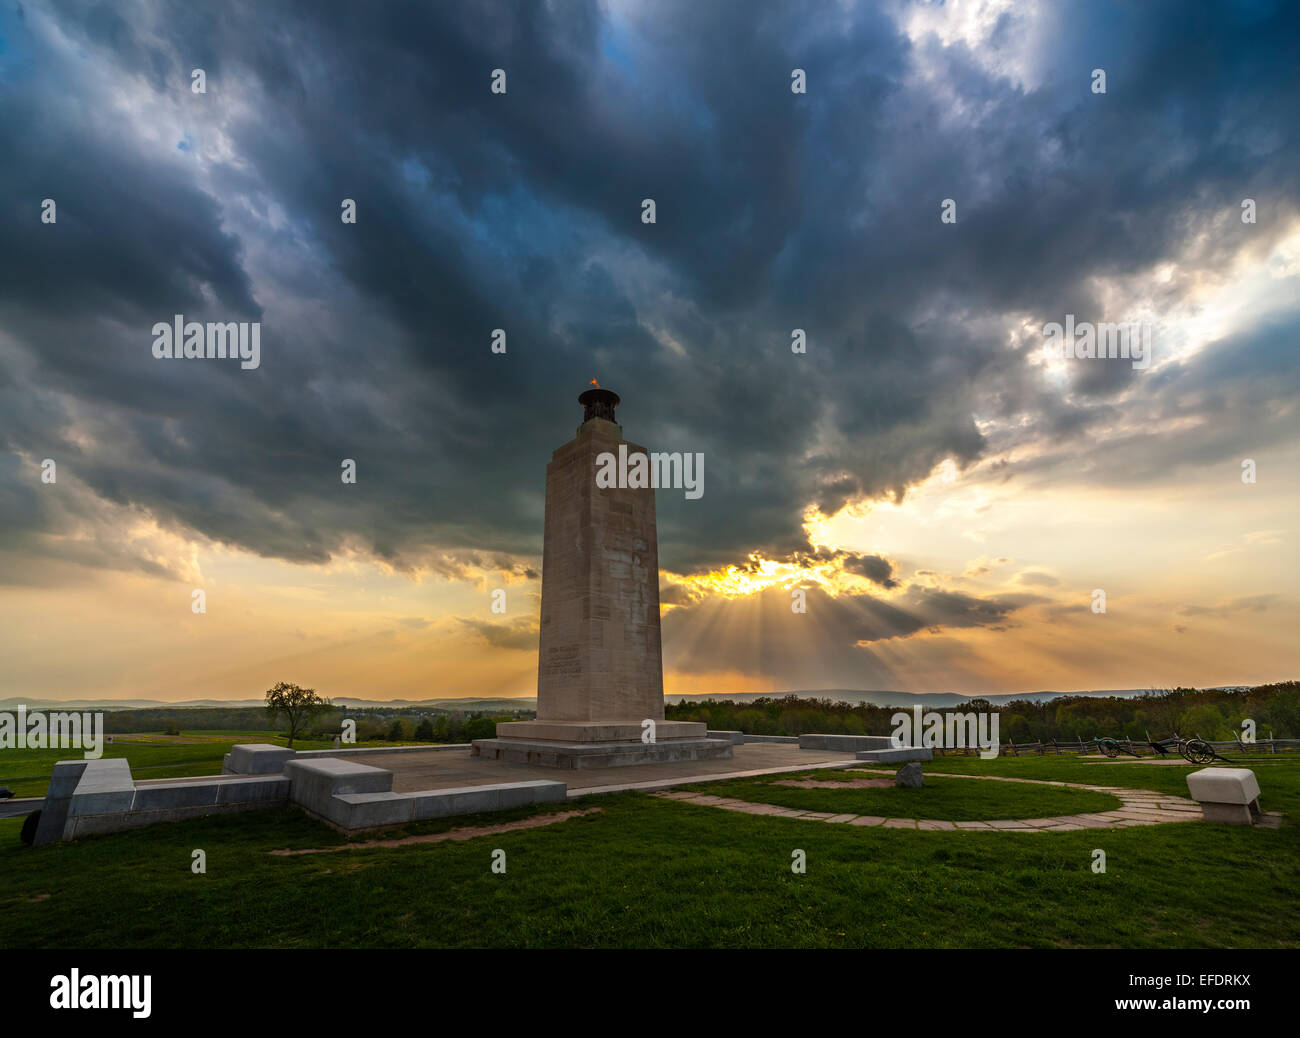 https://c7.alamy.com/comp/EFDRKX/gettysburg-eternal-light-peace-memorial-on-the-gettysburg-battlefield-EFDRKX.jpg